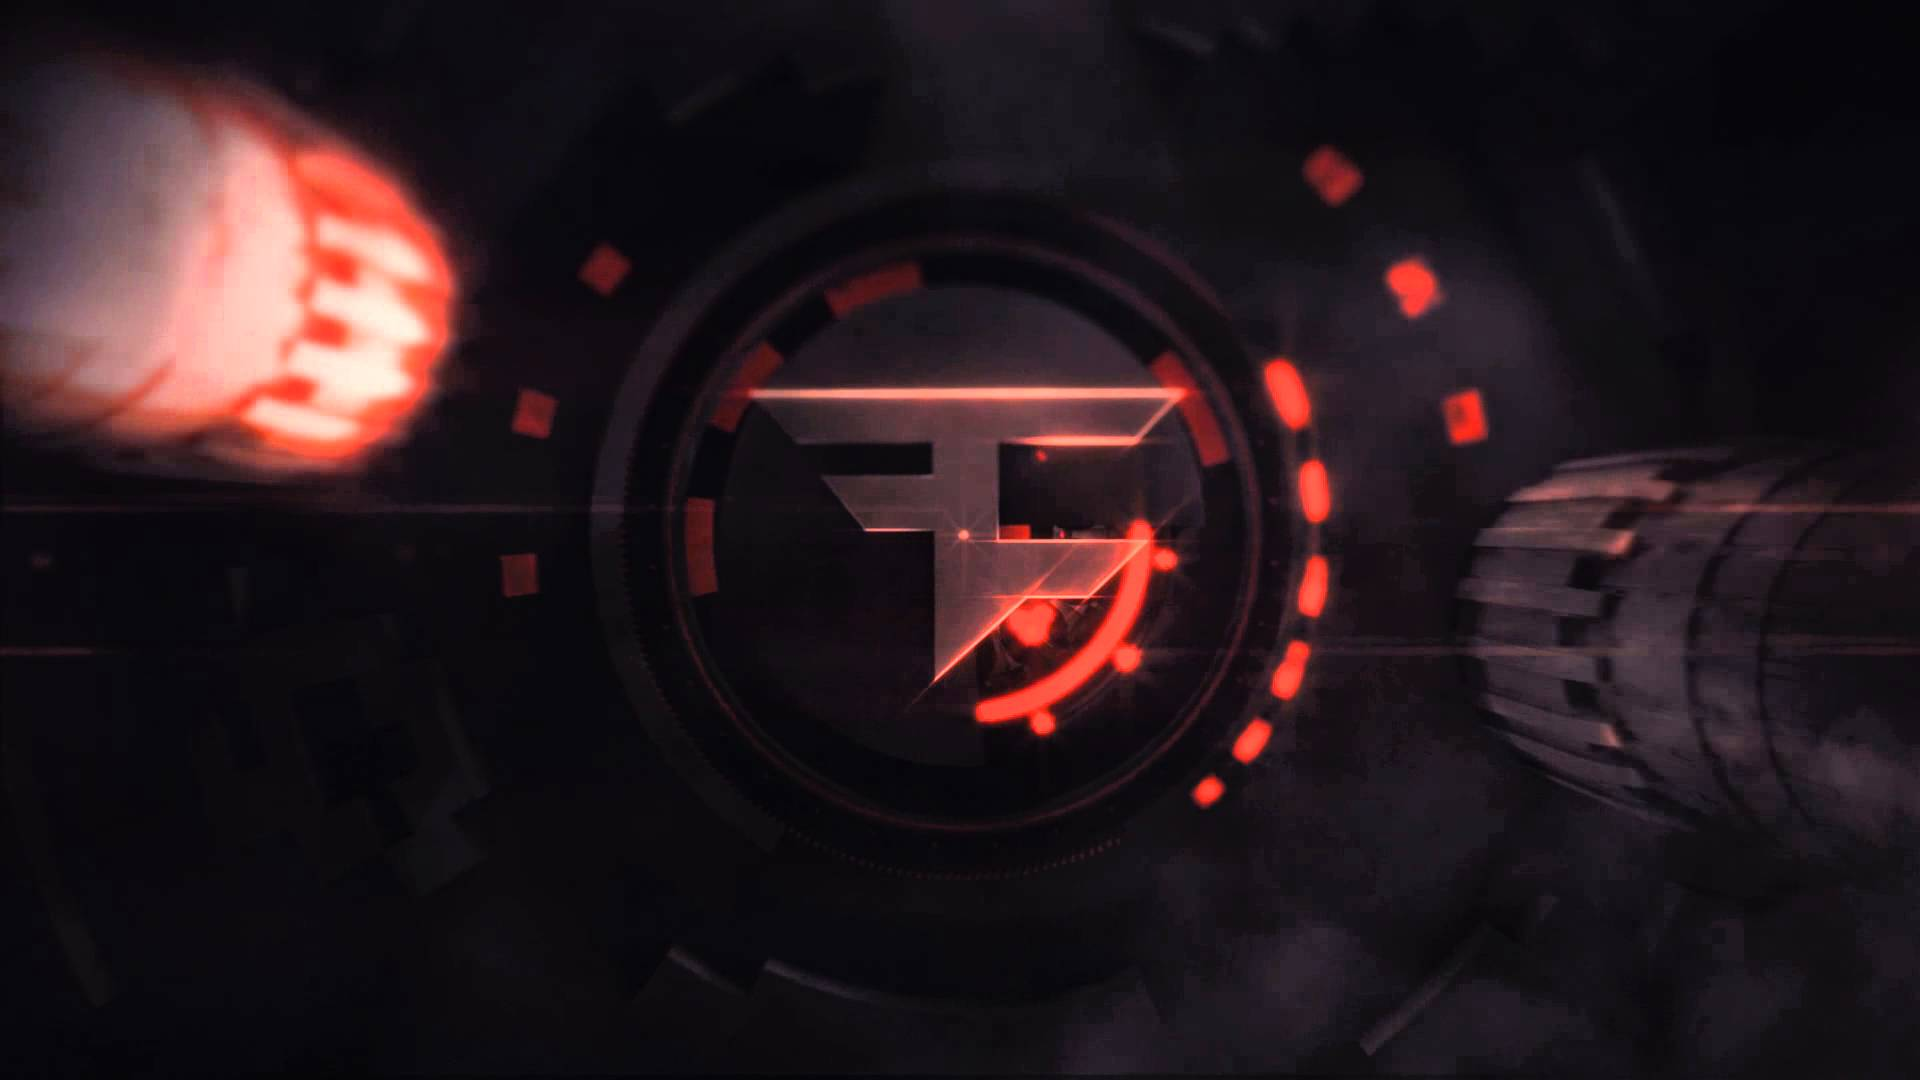 Displaying Images For Soar 1920x1080